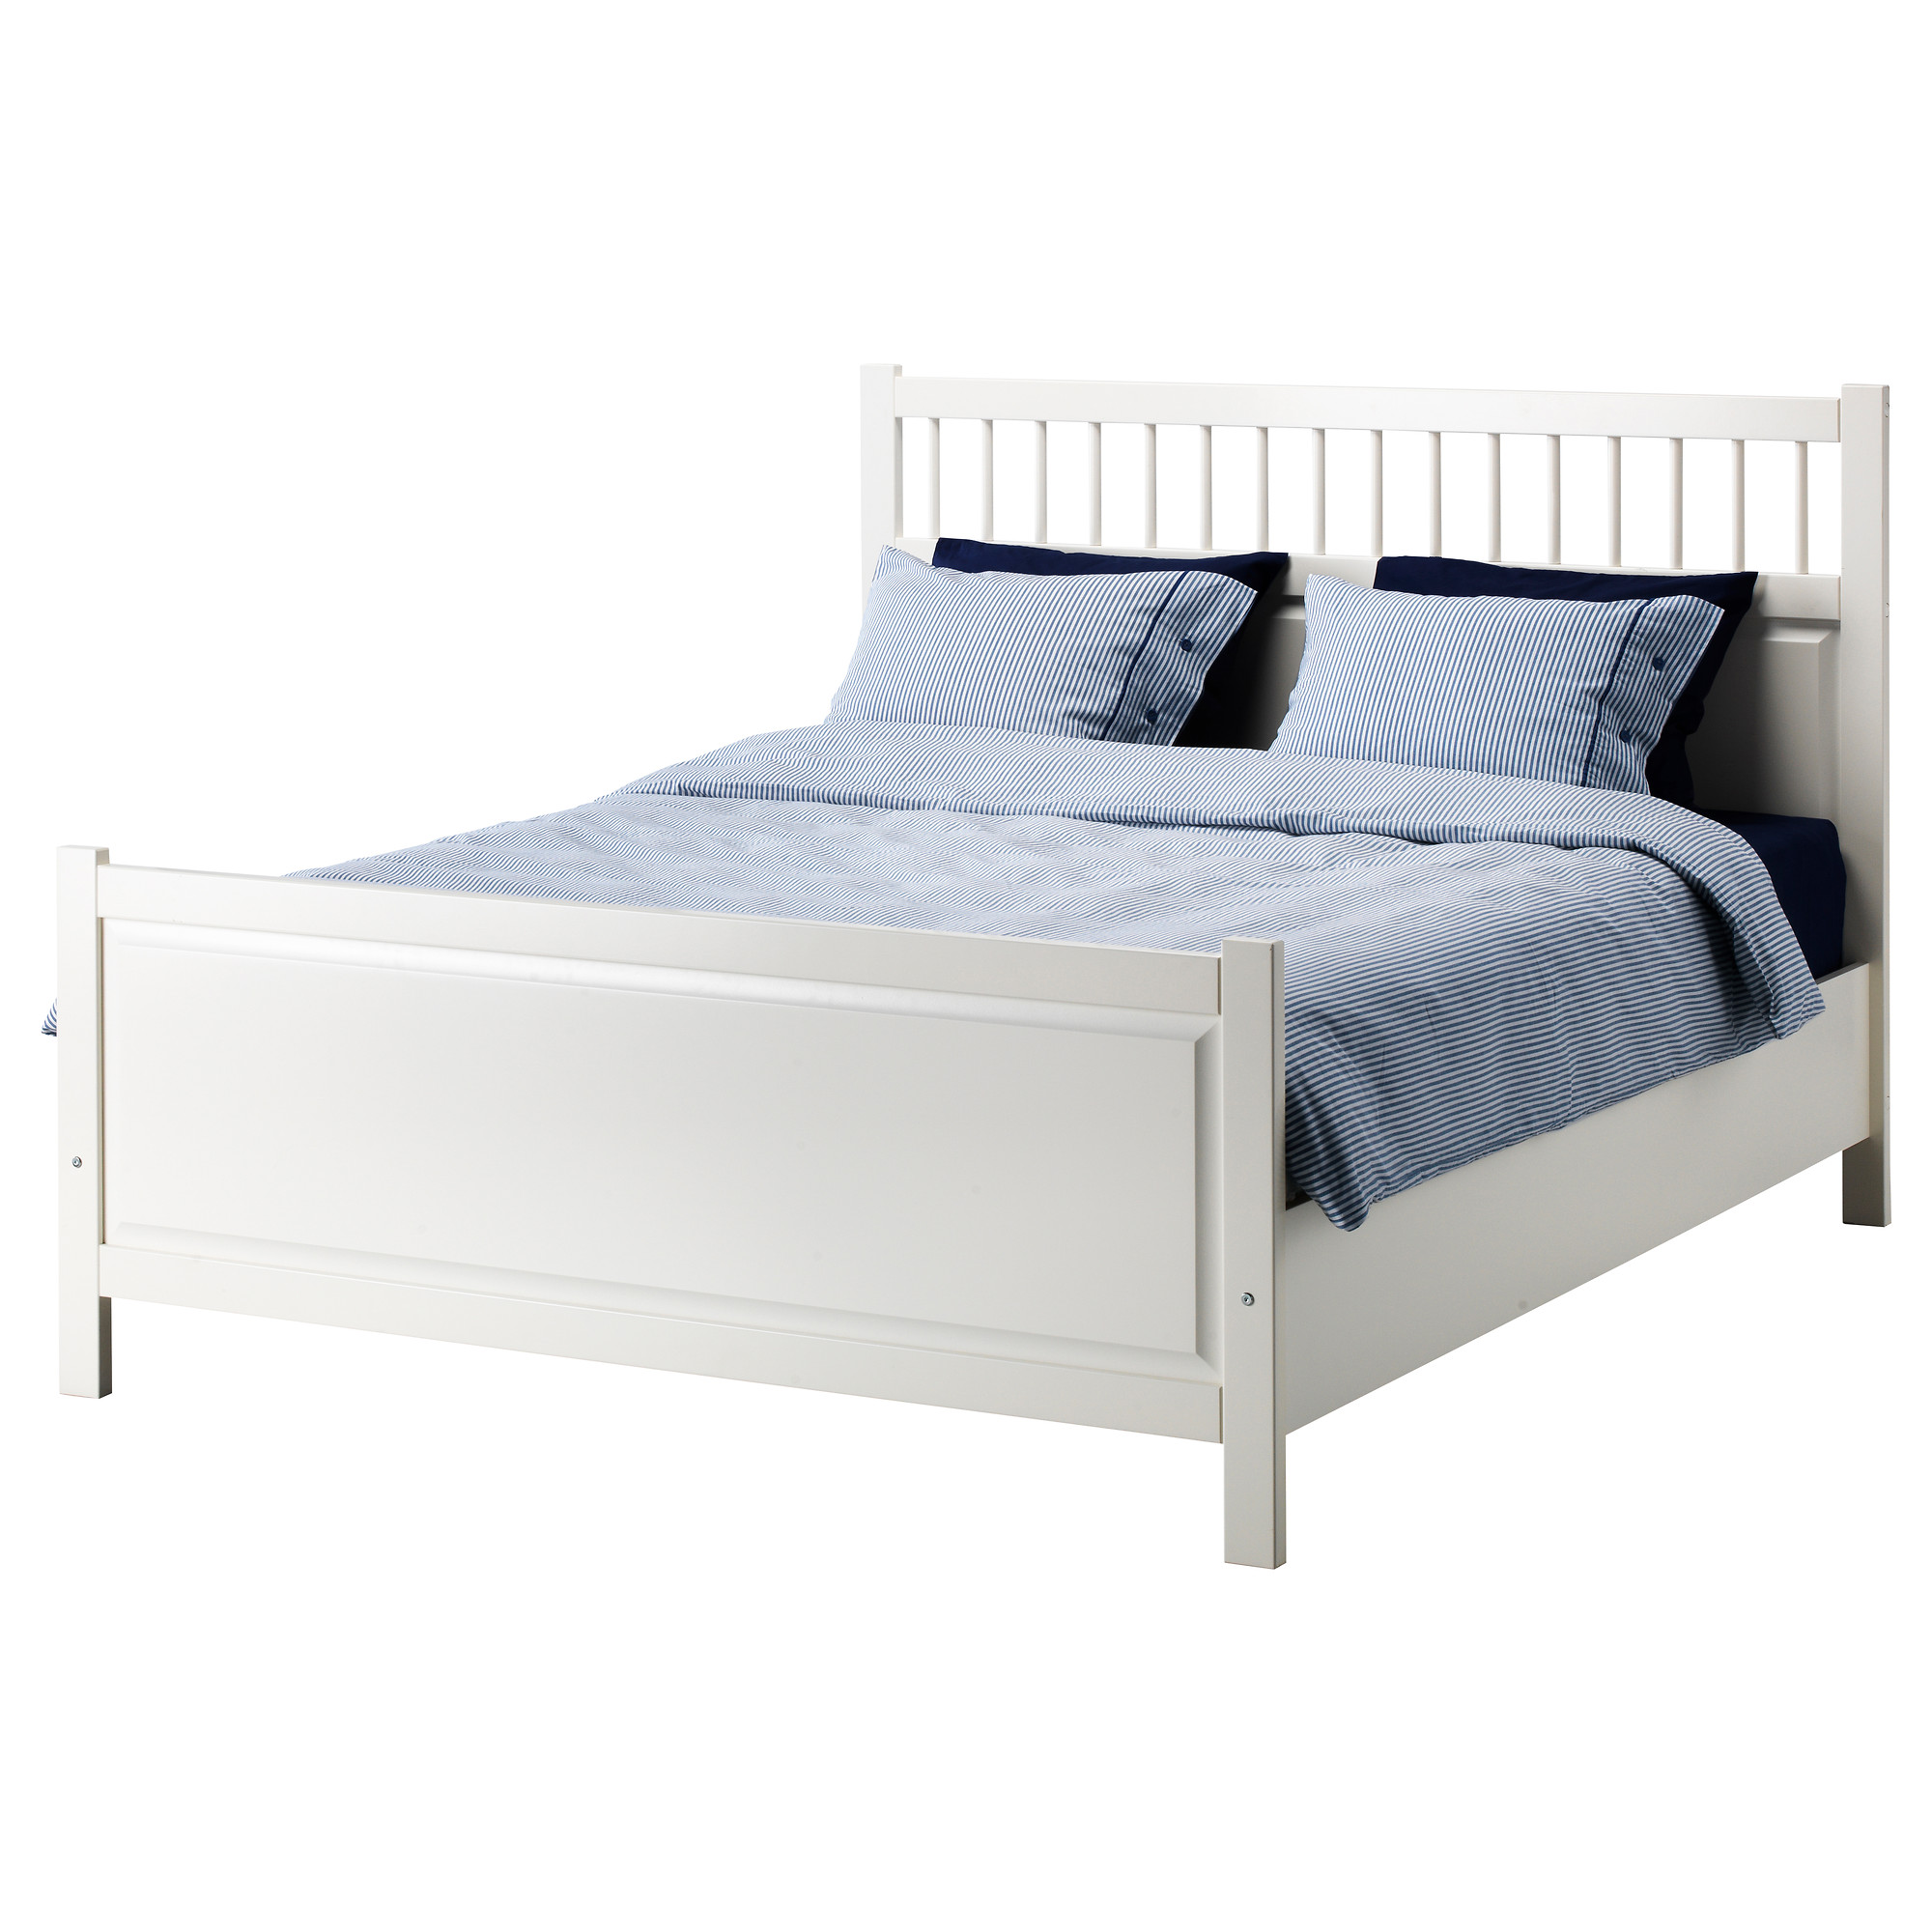 Awesome ikea king platform bed homesfeed for Ikea blue bed